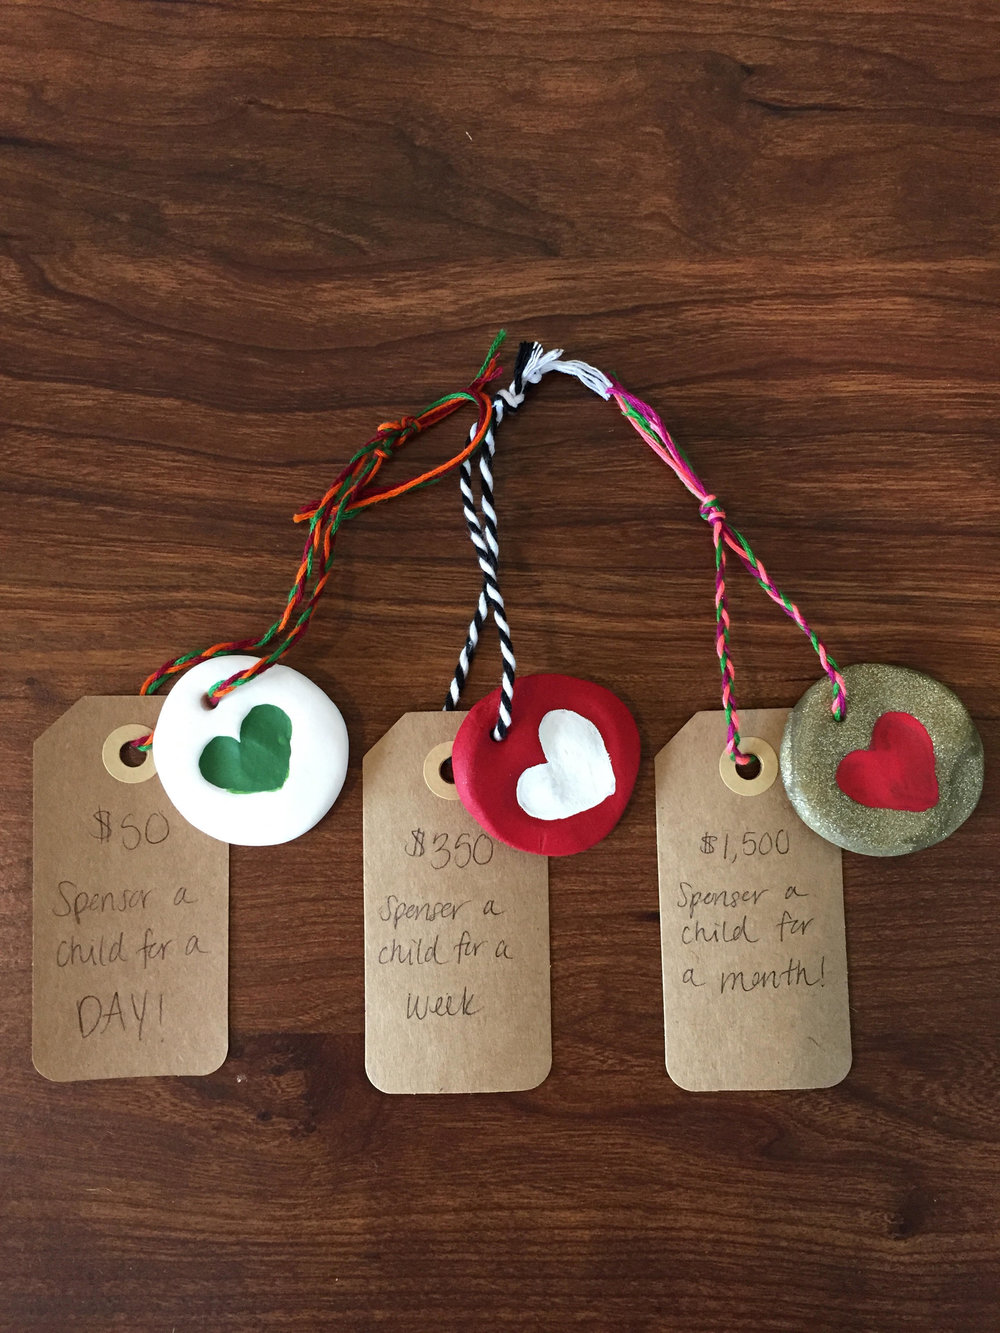 "Acts of Love ""Sponsor a Child"" Ornaments!"